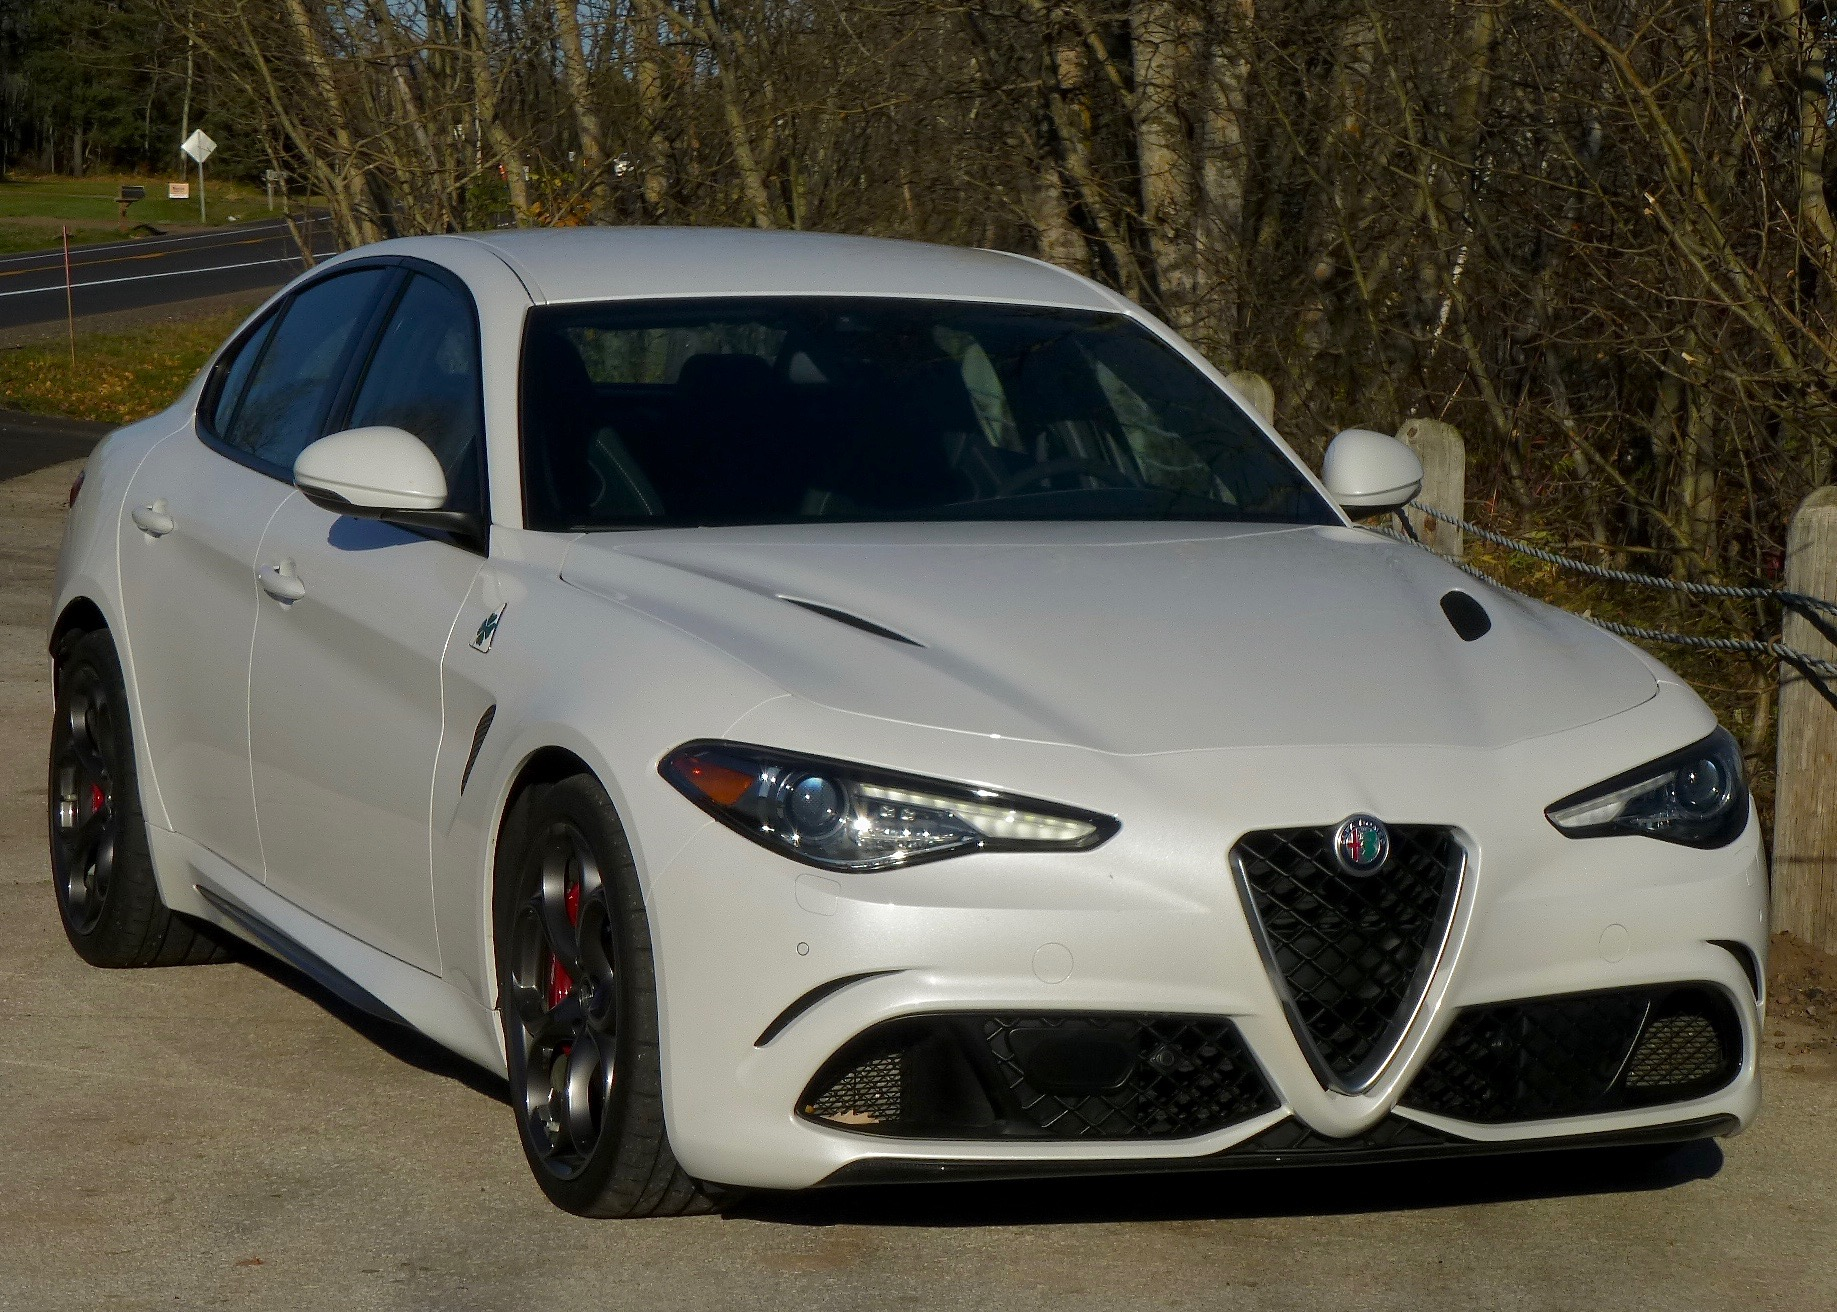 Gleaming pearlescent white paint is almost as distinctive as the Giulia's signature red.